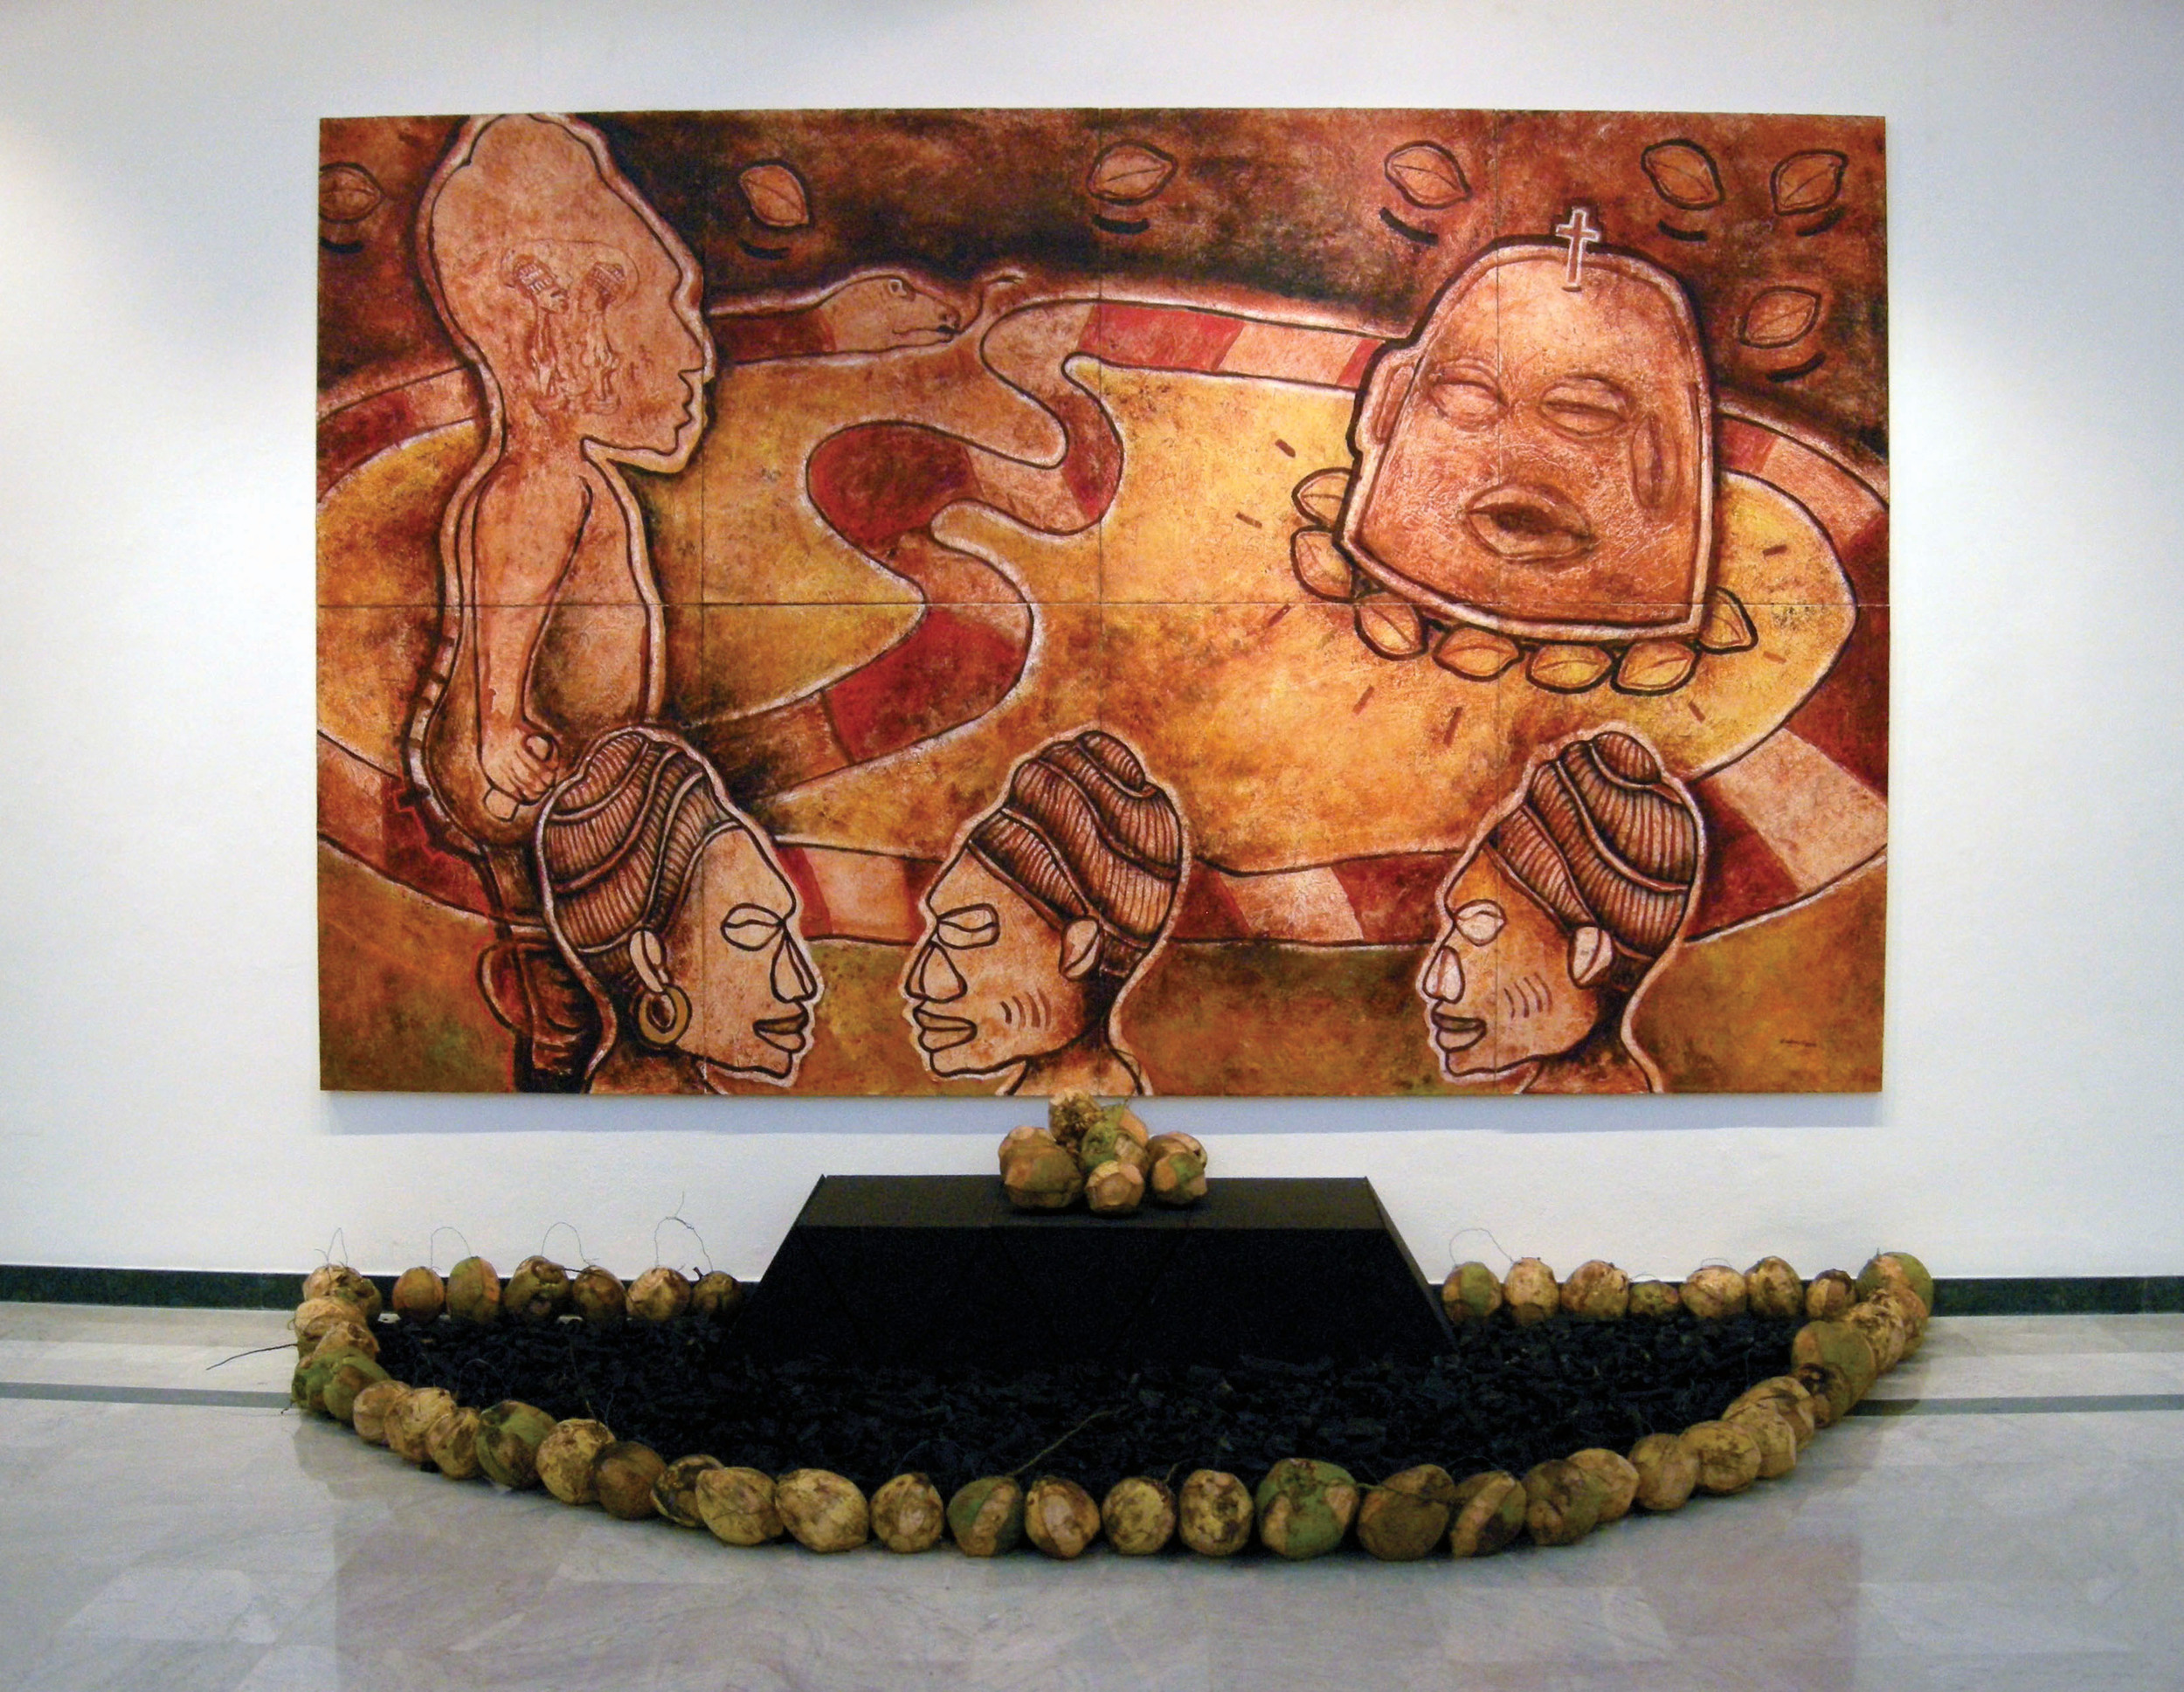 Archeology of Memory: They are Talking, 2010, Encaustic Painting on Linen, Wood Sculpture, Coconuts and Charcoal, Encaustic painting on linen, sculptures and organic material